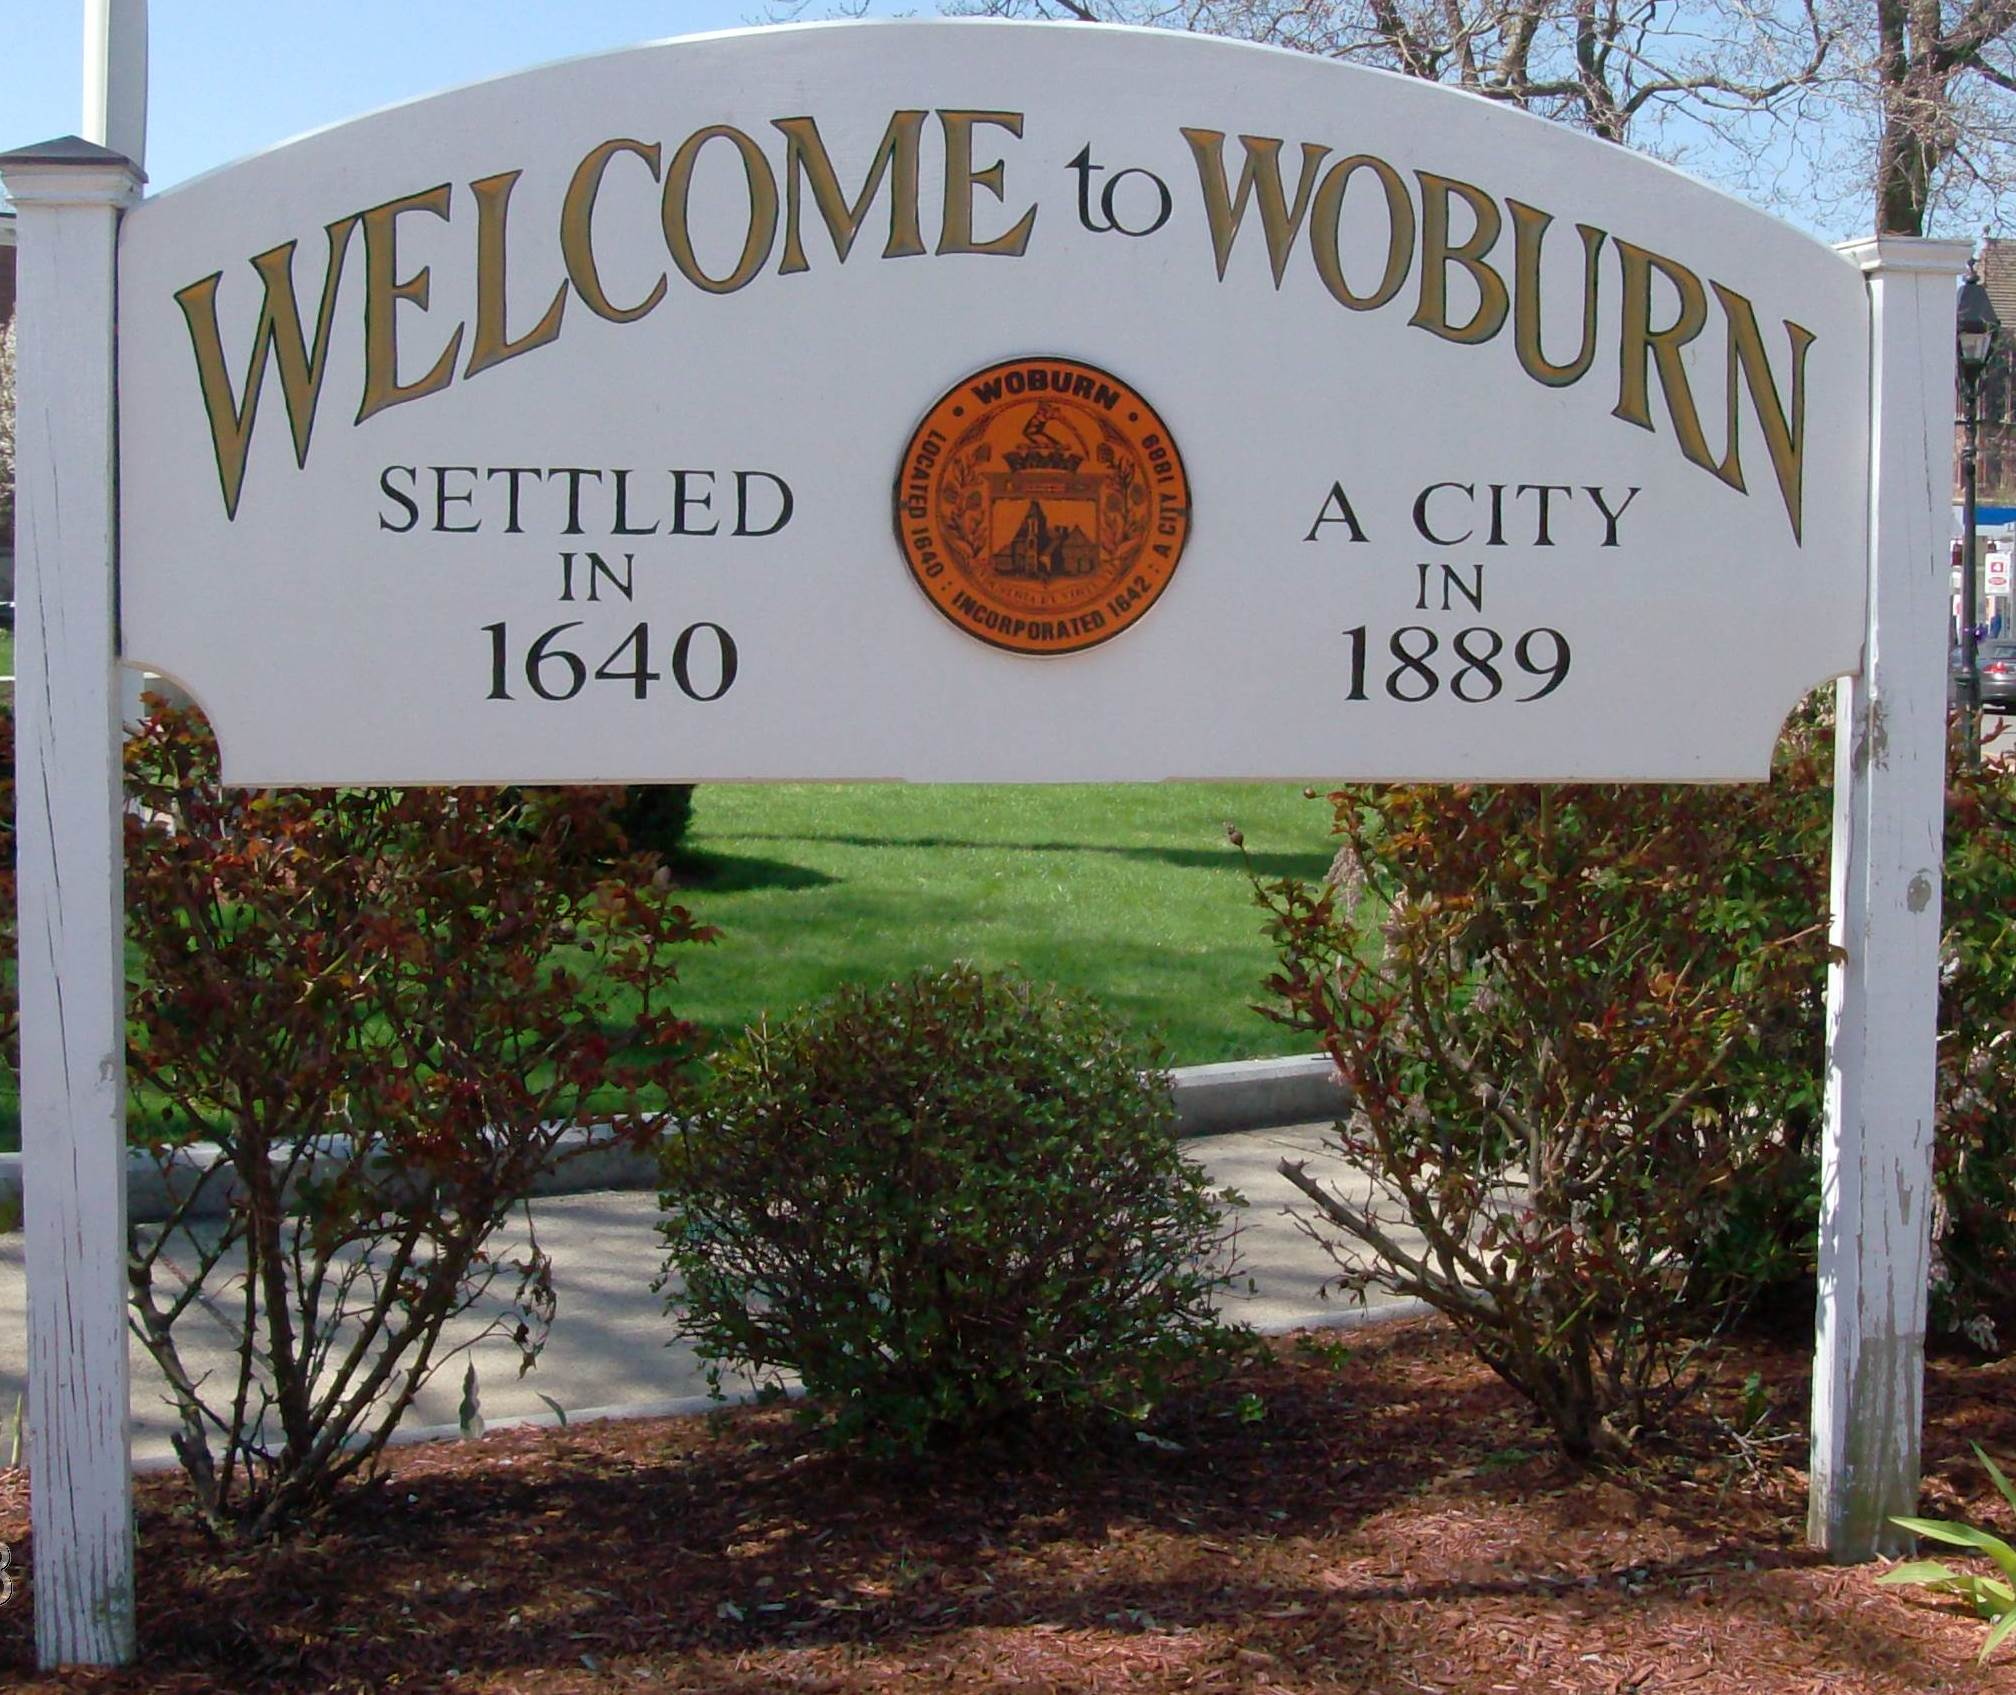 Woburn, a serene town in Middlesex County, is family-friendly, peaceful and an urbane neighborhood RealEstate Places